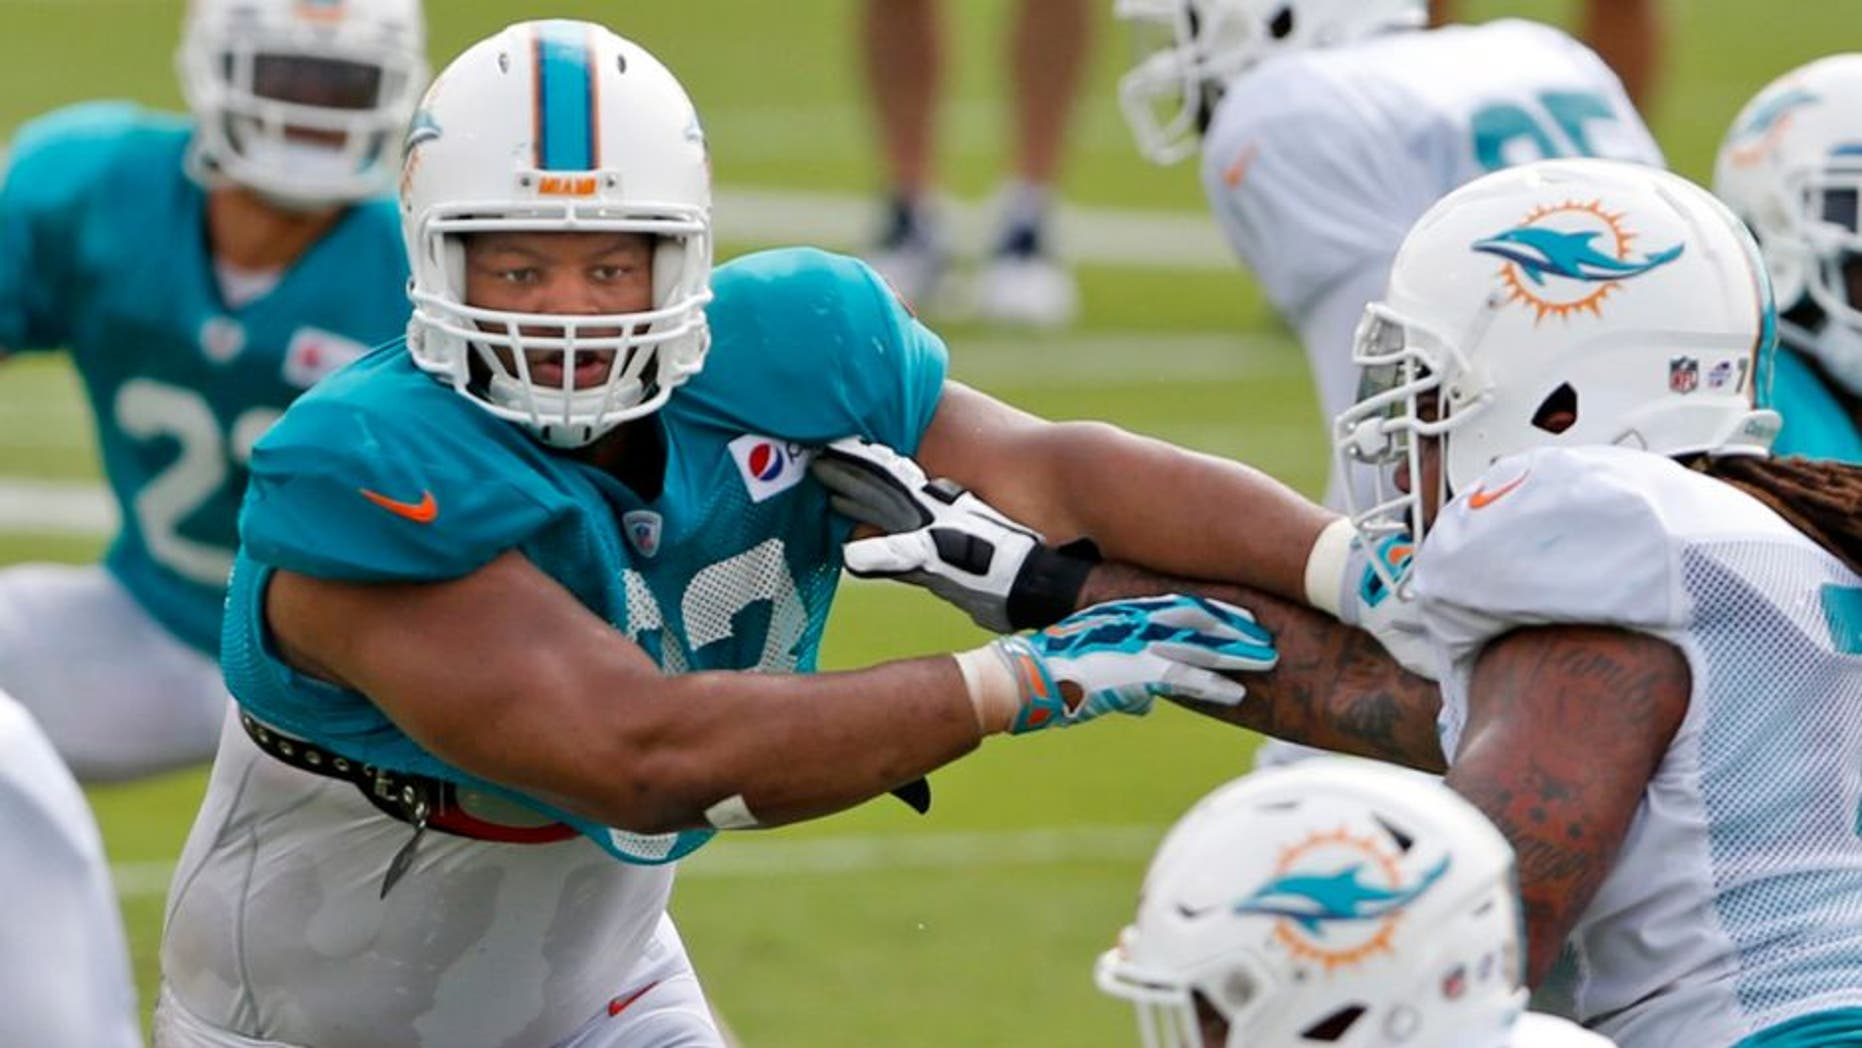 Miami Dolphins defensive tackle Ndamukong Suh (93) runs drills during NFL training camp, Saturday, Aug. 1, 2015 at Nova Southeastern University in Davie, Fla. (Al Diaz/The Miami Herald via AP) MAGS OUT; MANDATORY CREDIT